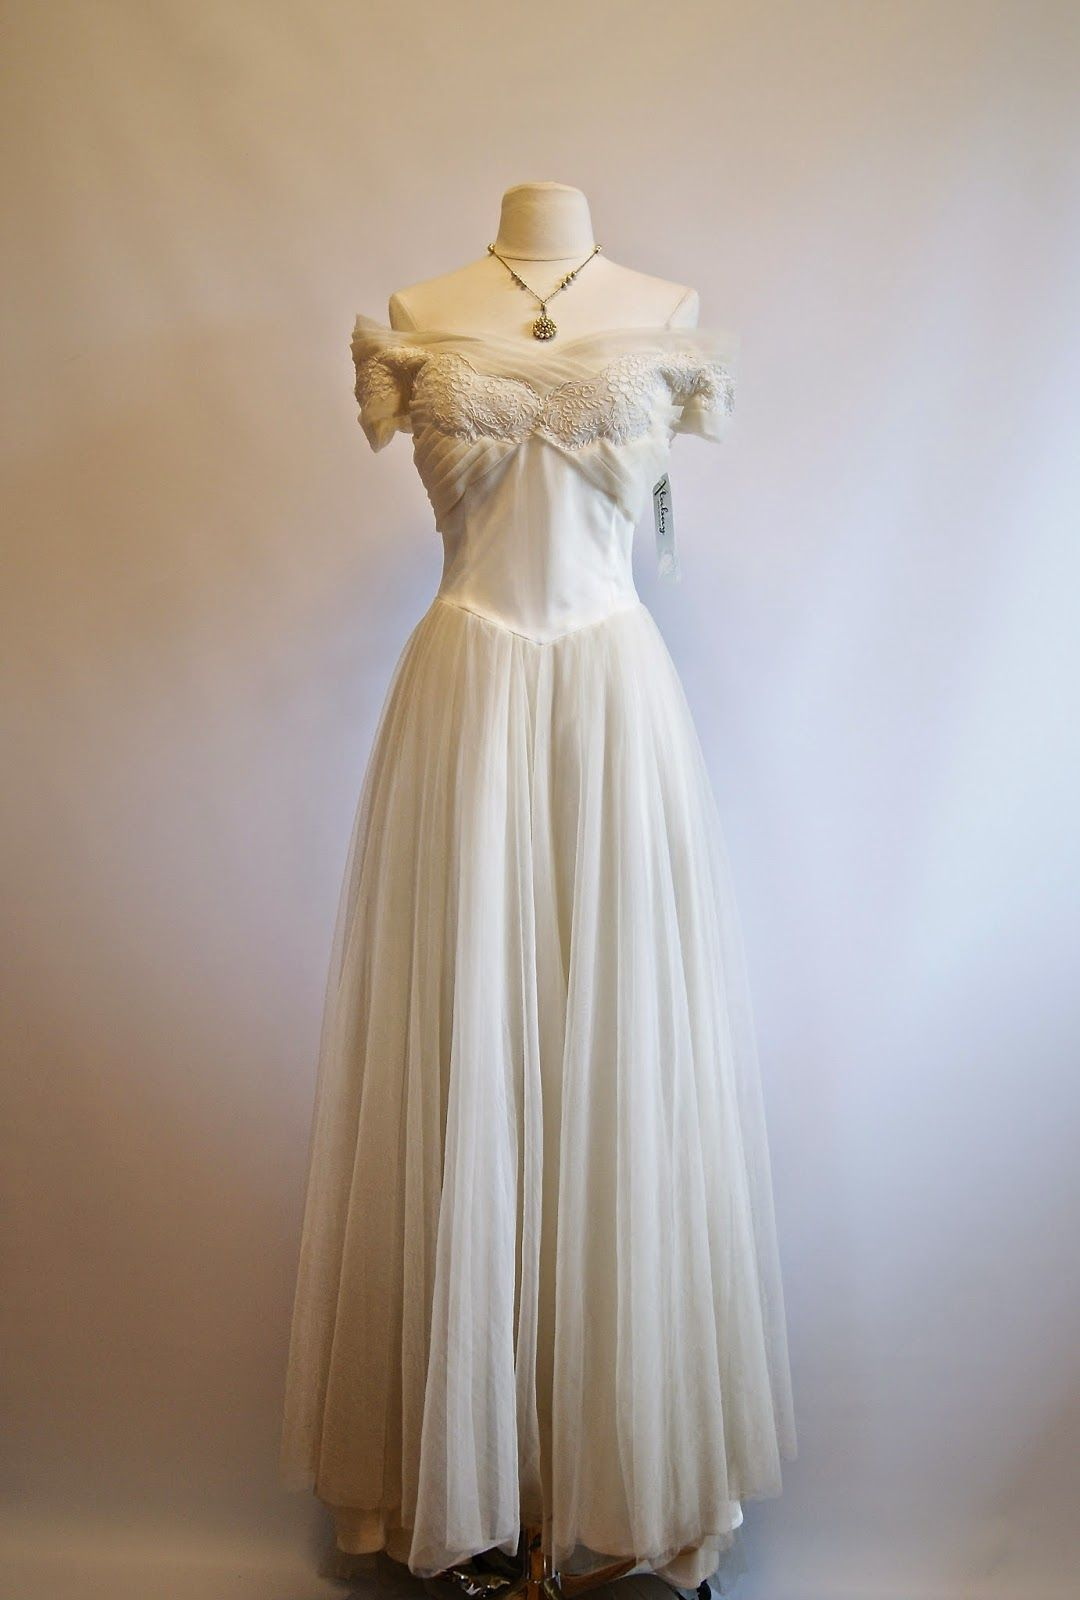 Xtabay Vintage Clothing Boutique Portland Oregon Vintage Outfits Wedding Dresses Vintage Vintage Clothing Boutique